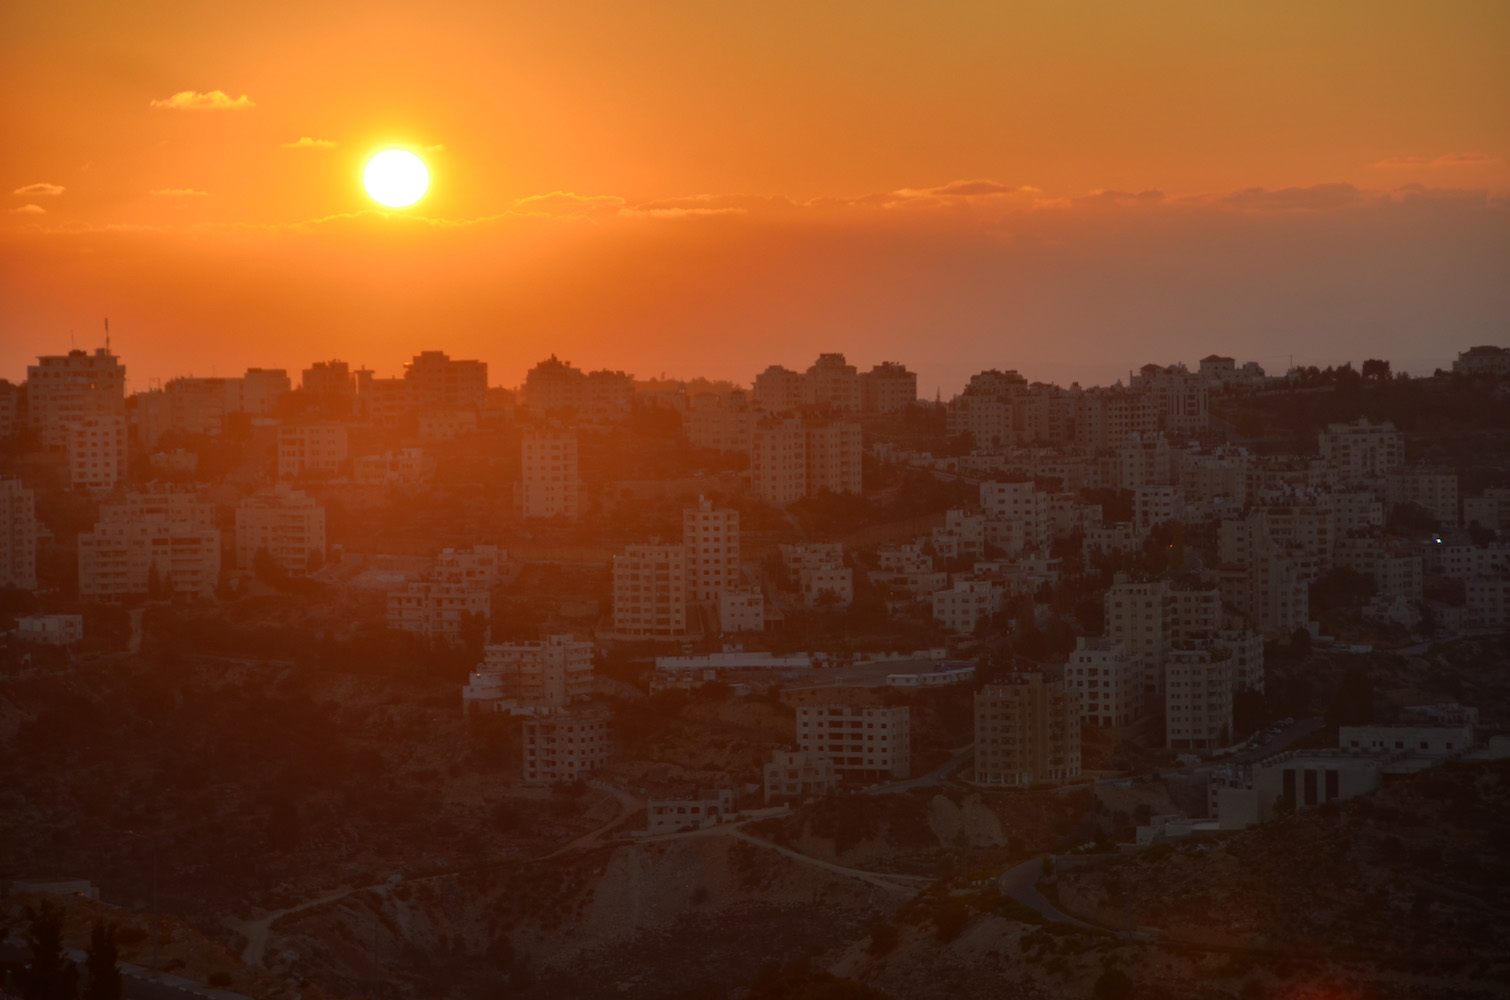 Sunset in Ramallah